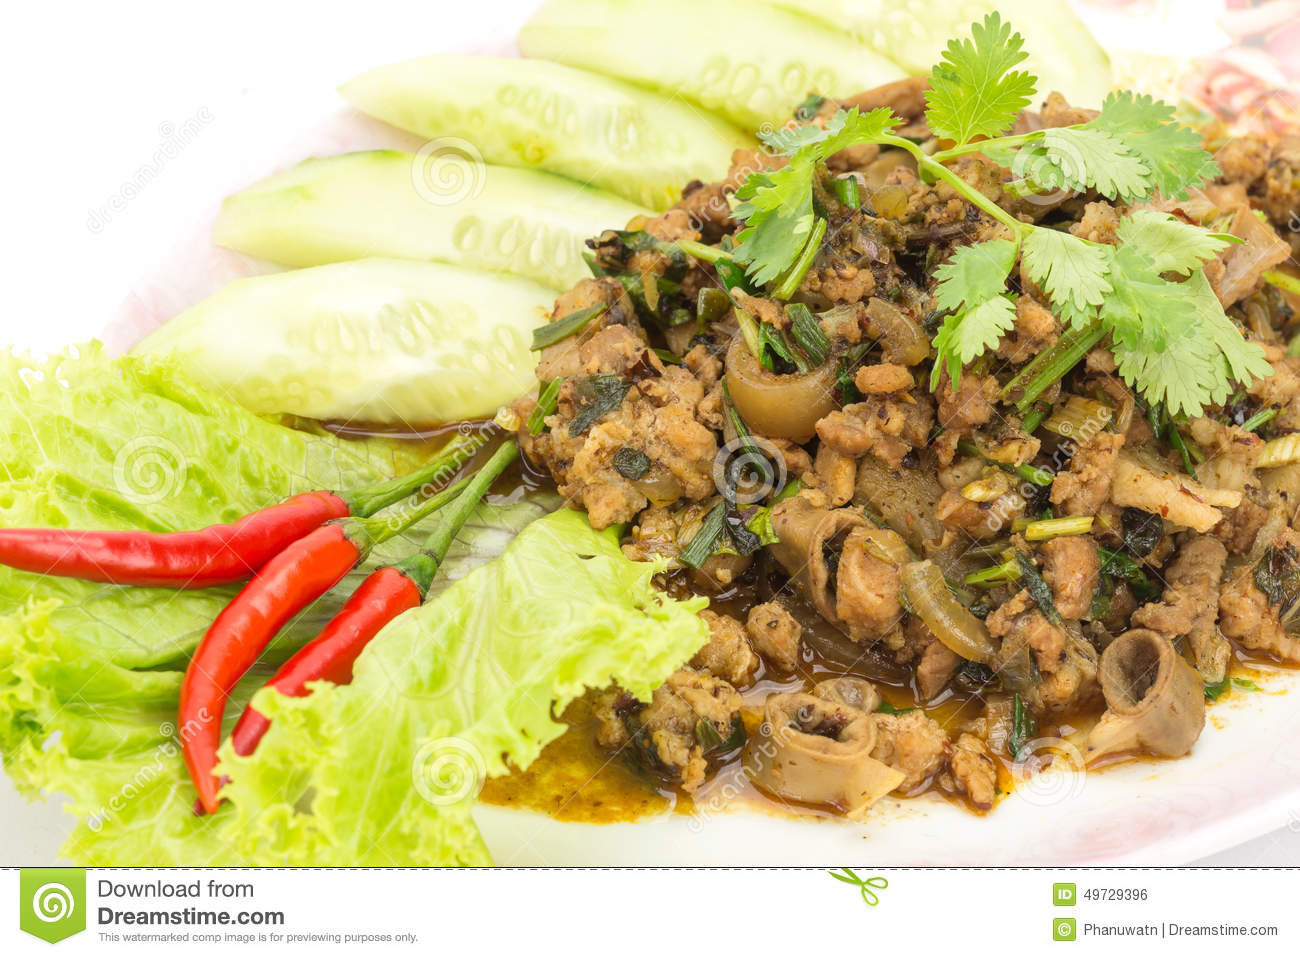 thai food as a cultural product This research, aimed to understand the meanings of thai food products, and associated cultural symbolism, in the united states a qualitative study spanned thailand.